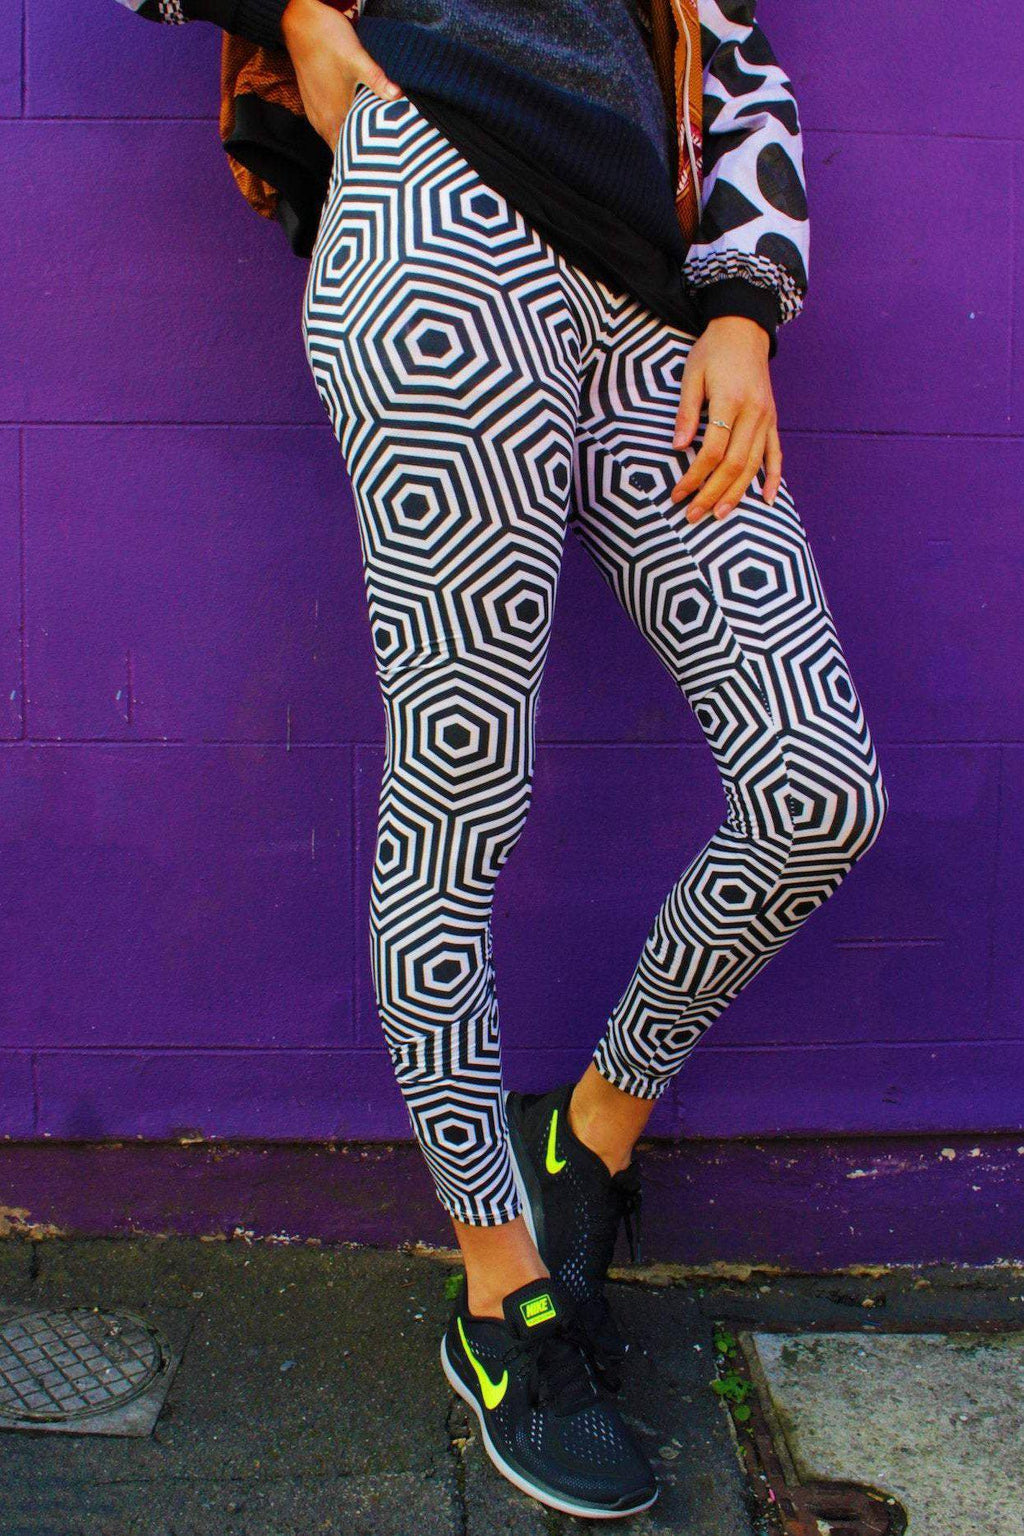 Day Tripper Leggings //Psychedelic Leggings //Crazy Leggings //Festival Pants //Meggings //Colourful leggings // Hippy // Patterned Leggings